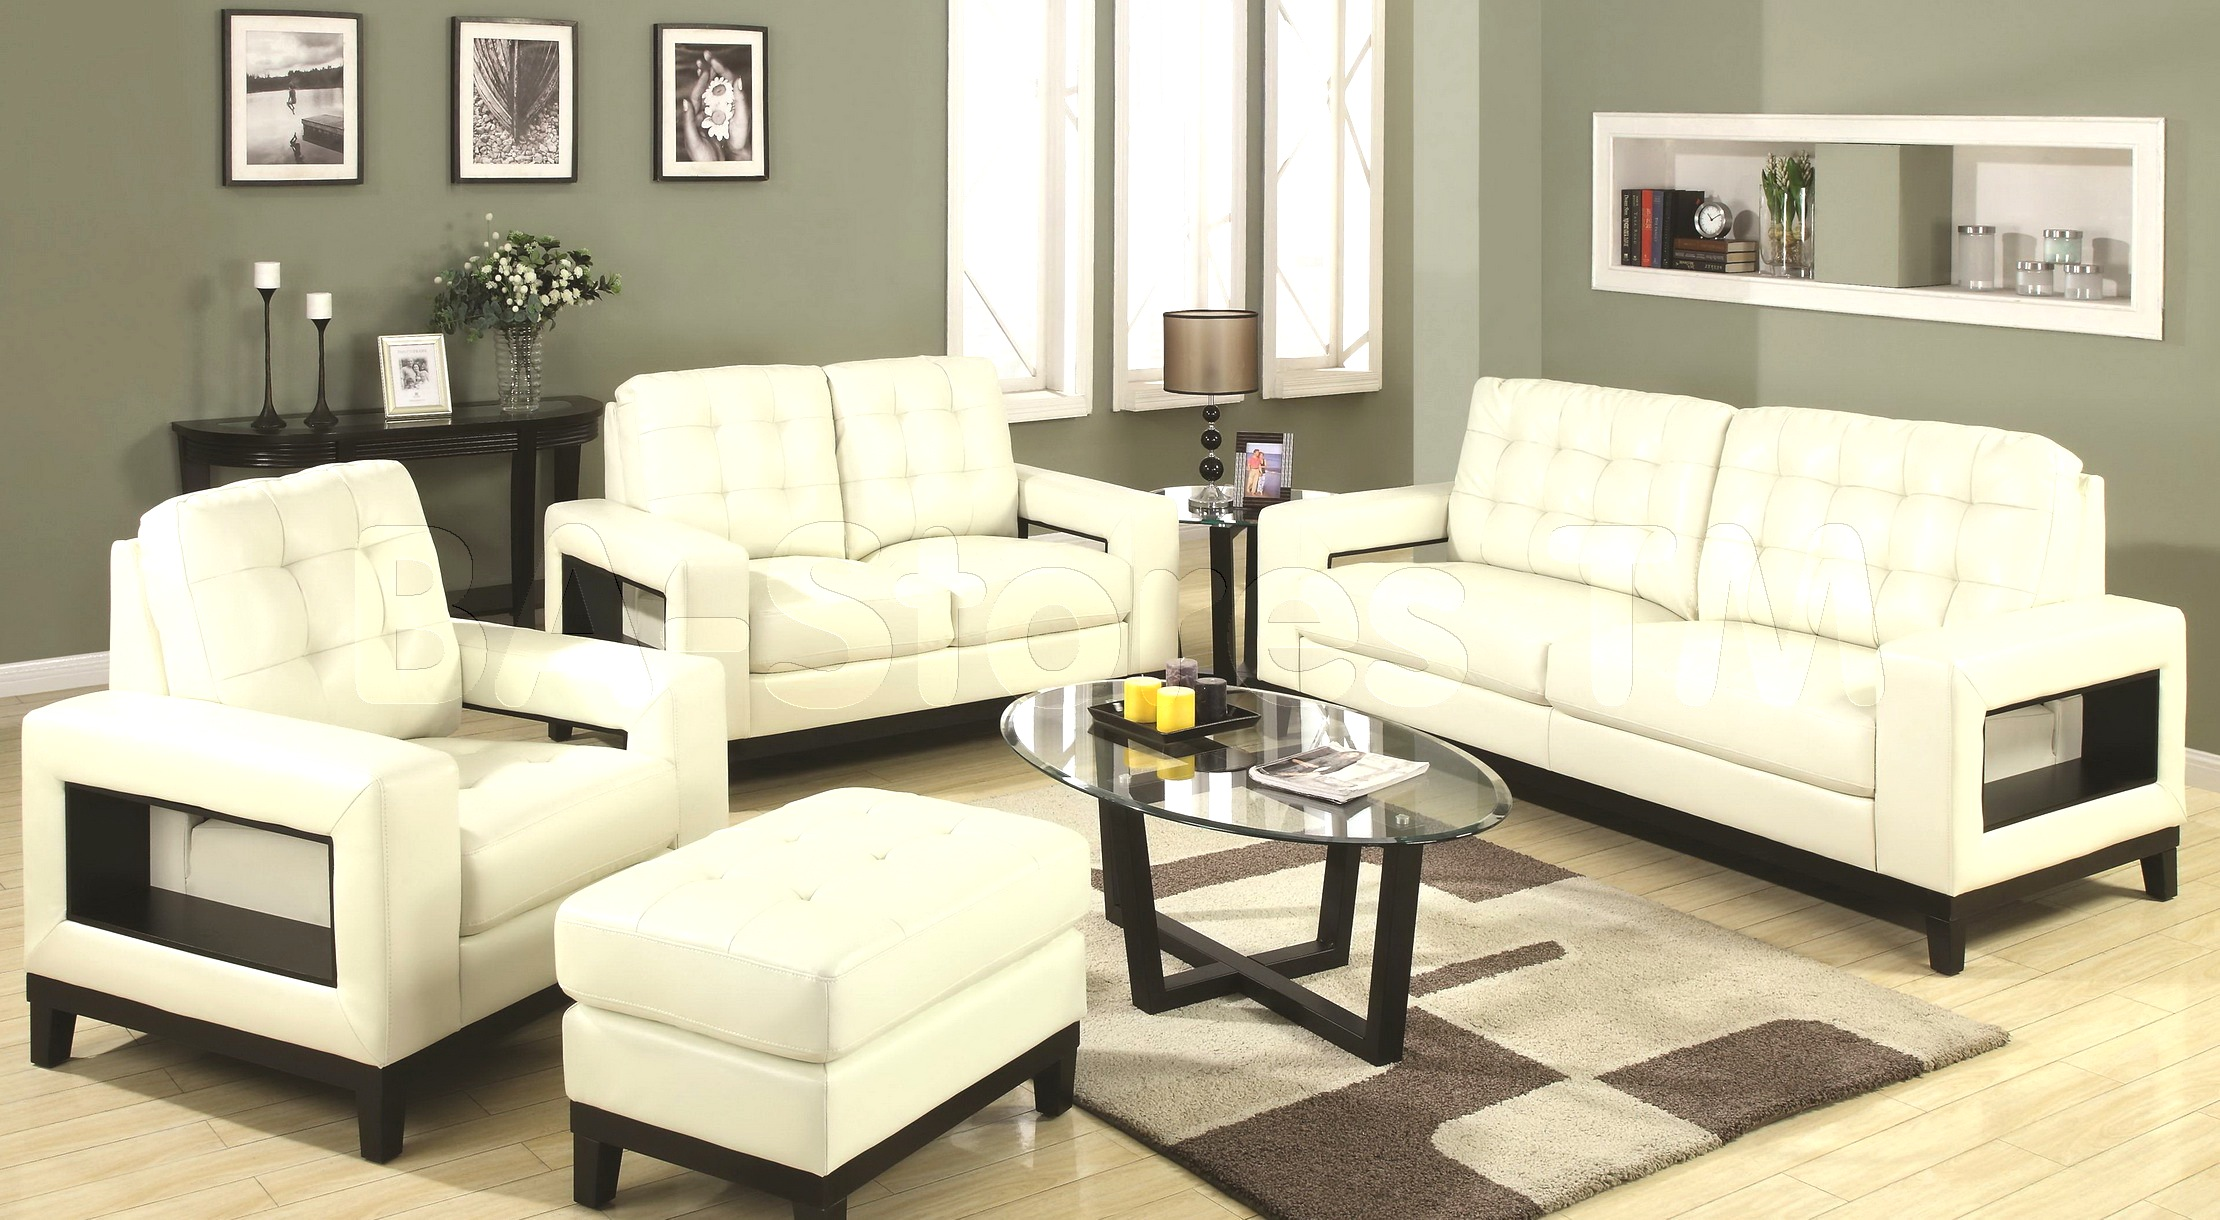 Sofa set designs home design for Sitting room sofa designs